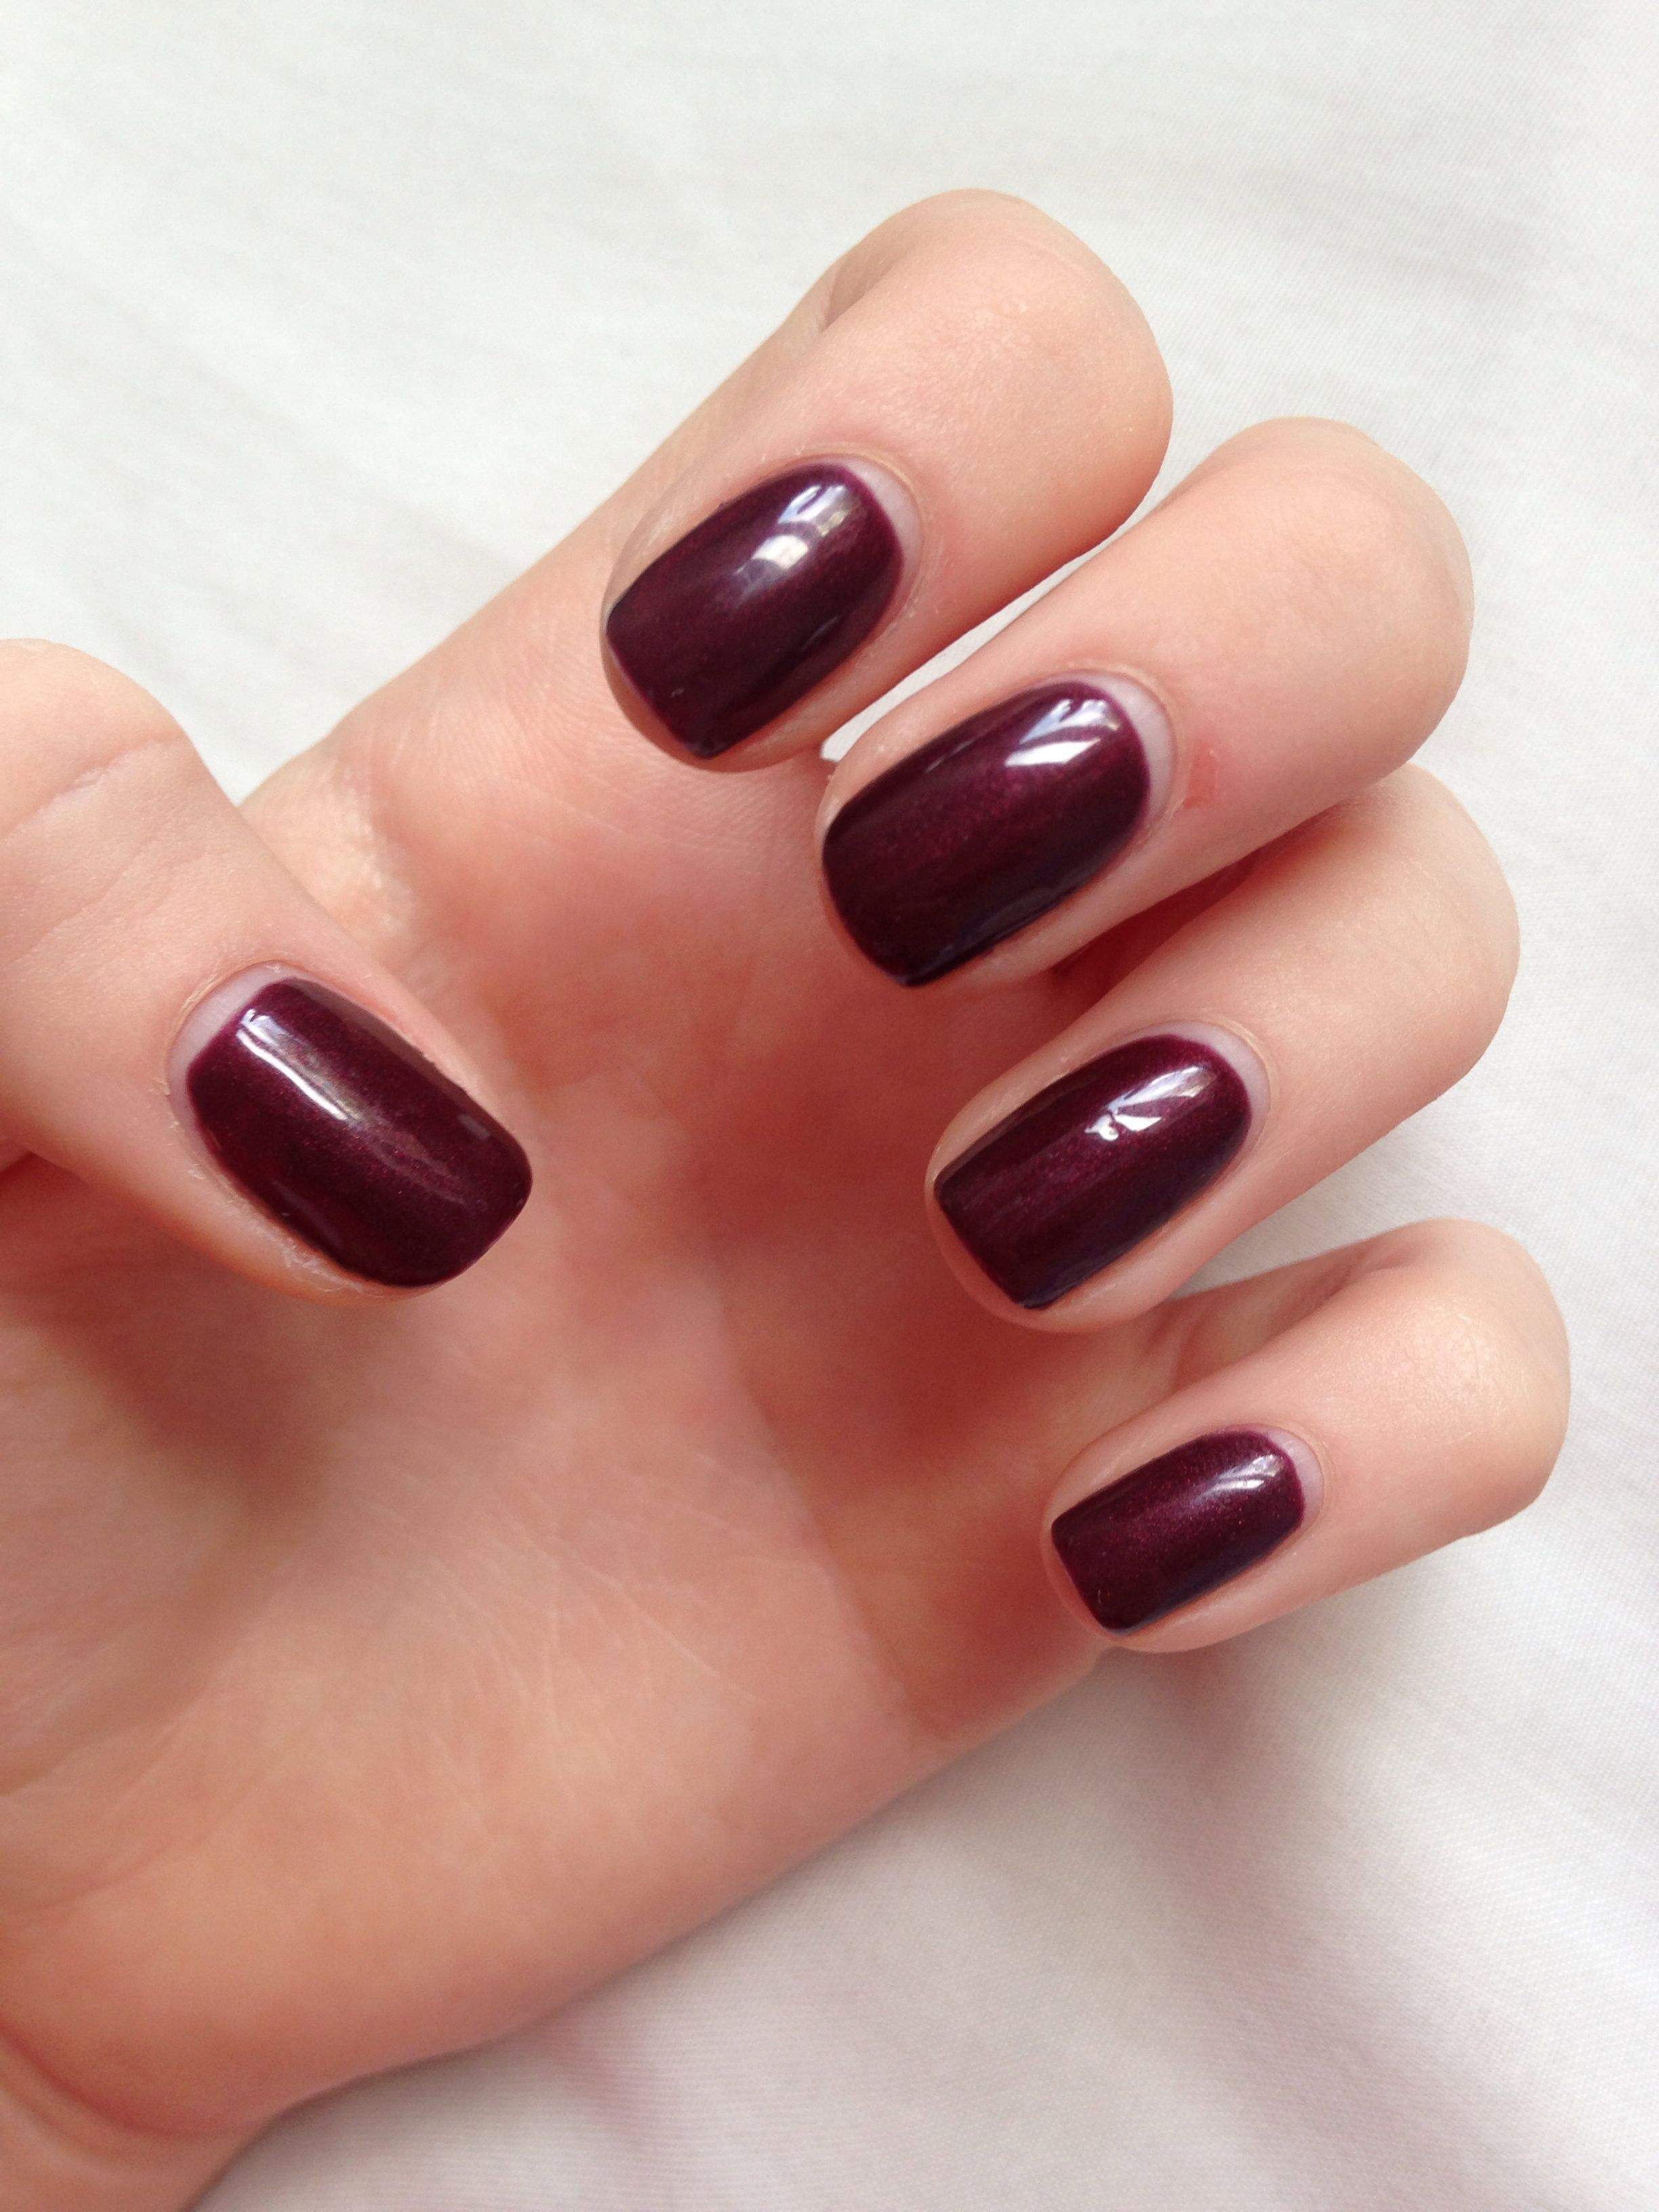 Dark Lava Bluesky Gel Nails Product Is Average But Tends To Chip Quickly In 2019 Bluesky